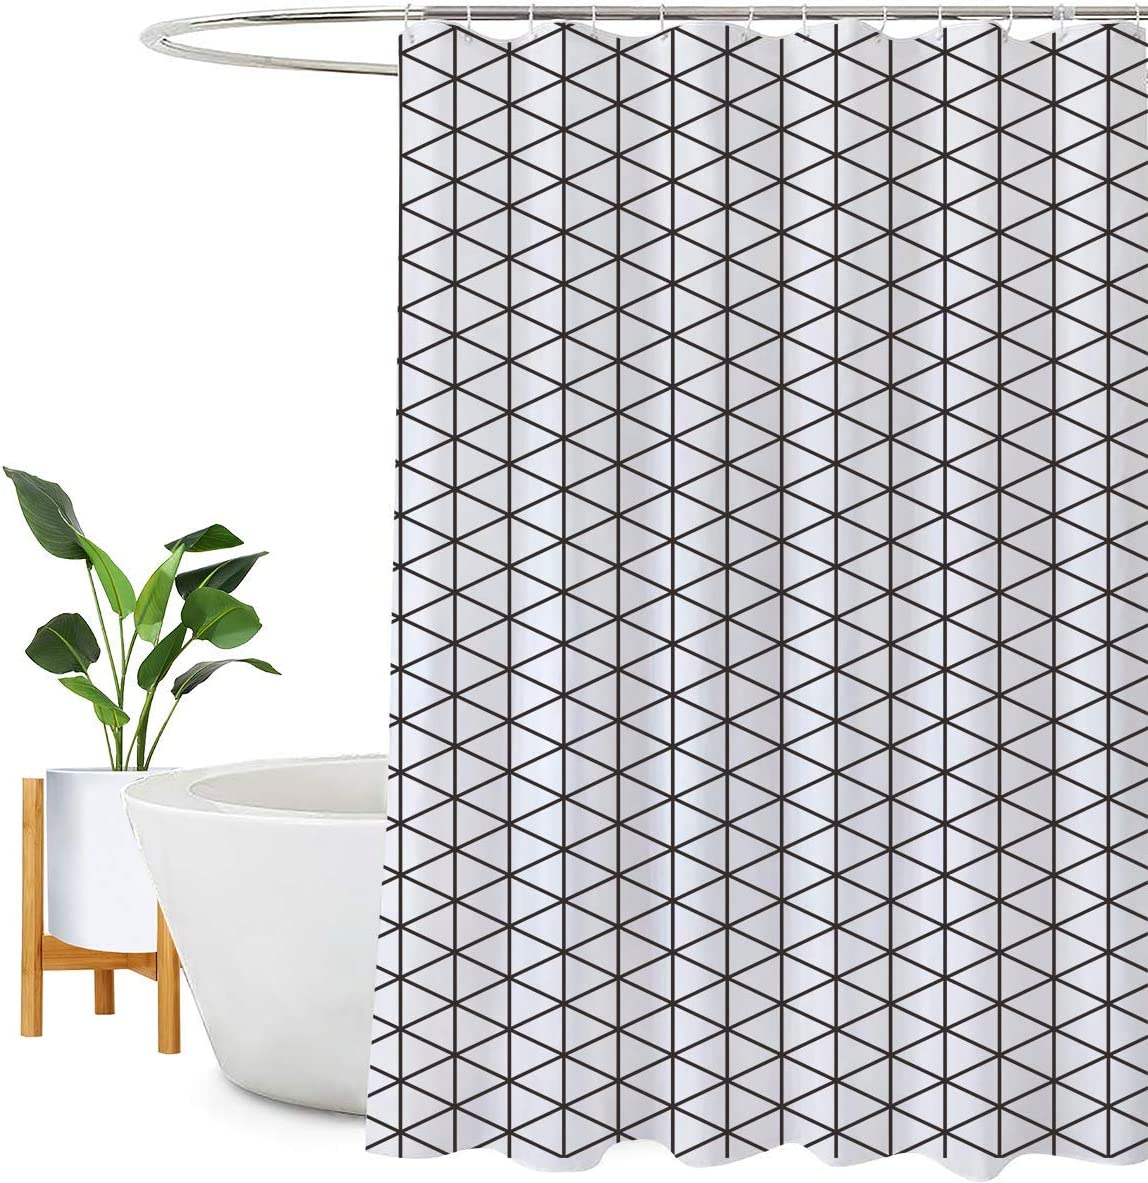 Encozy Shower Curtain Waterproof Mould Proof Resistant Bathroom Curtain Washable Bath Curtain with 16 Hooks (Black and White, 180X240cm) Black and White 180X240cm